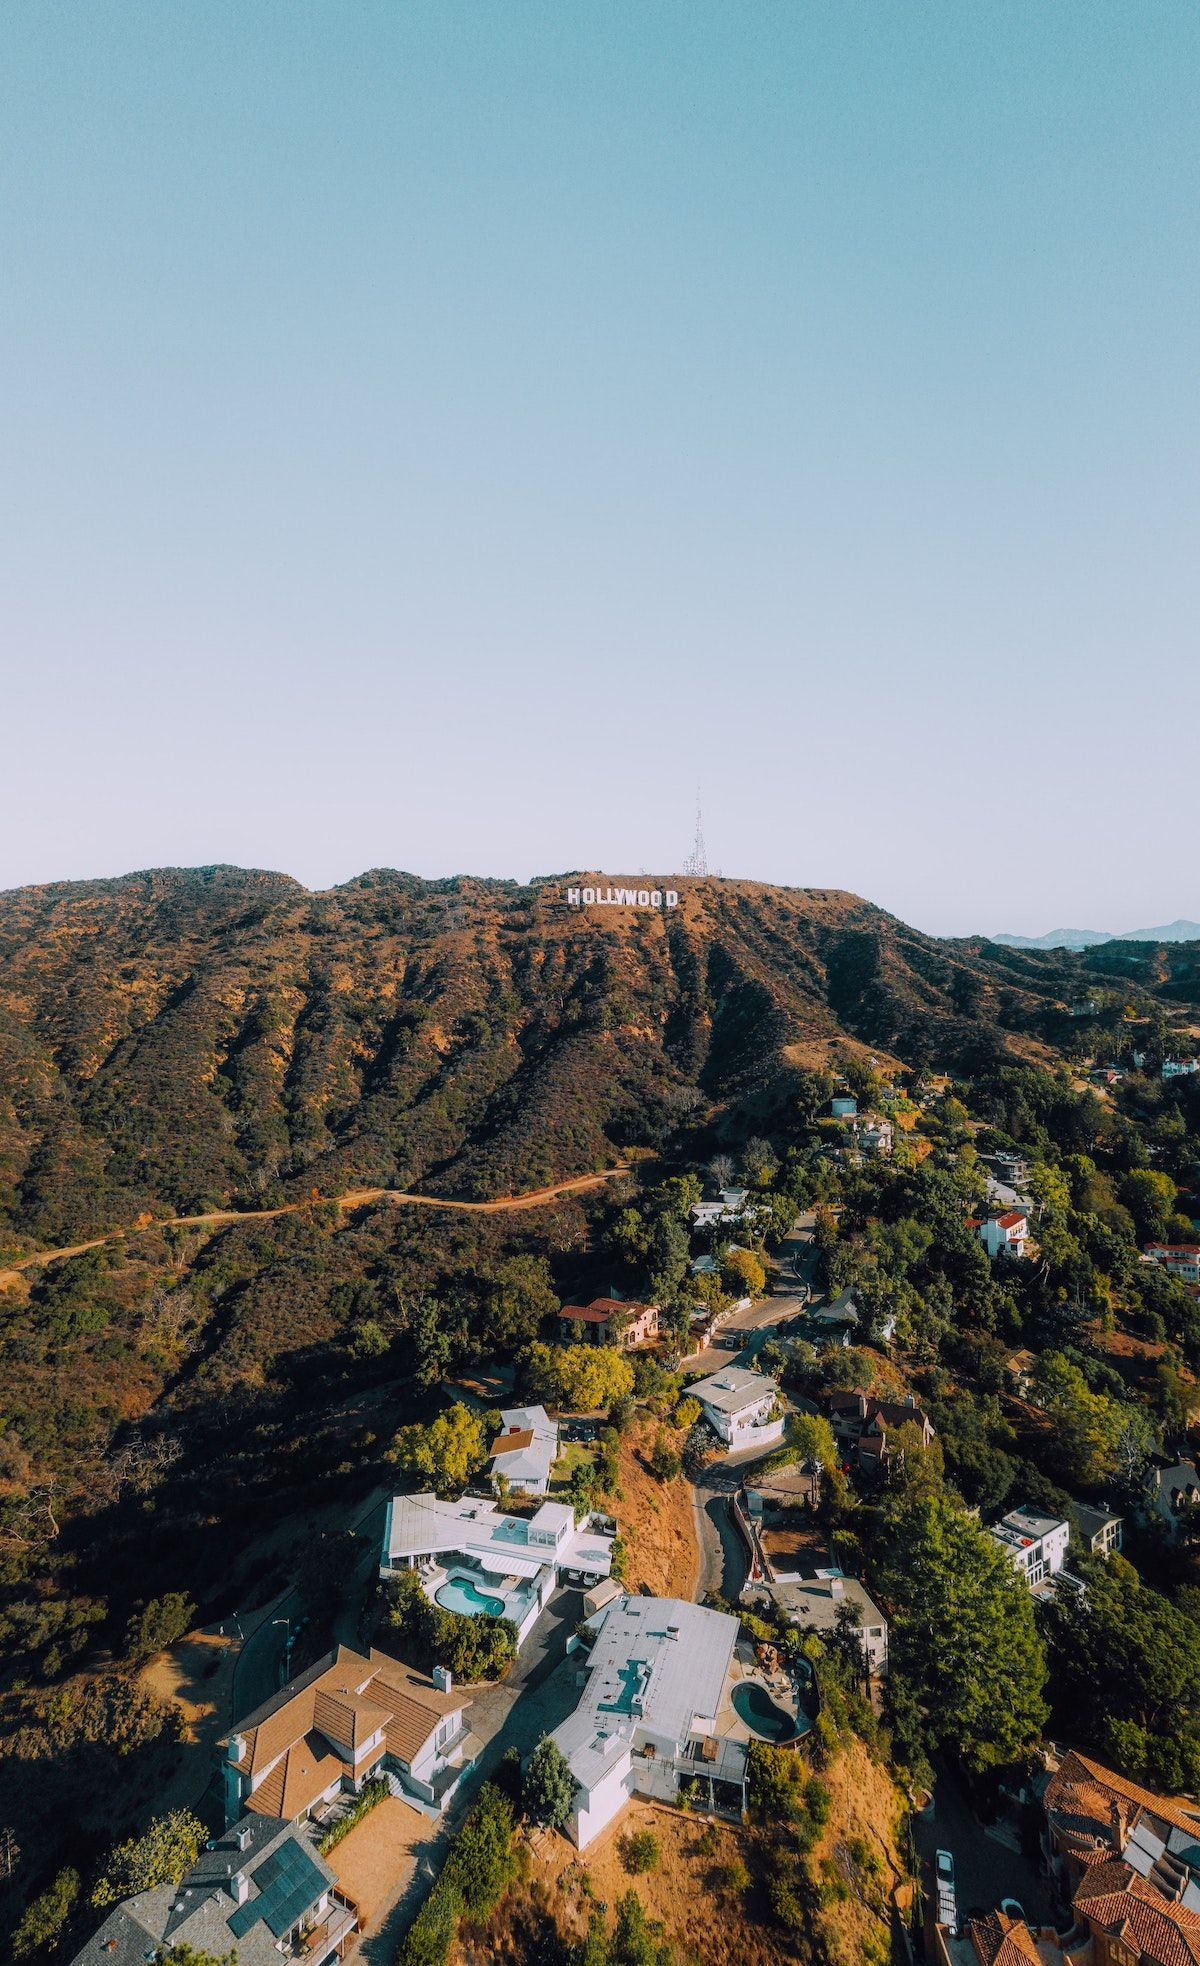 Arial view of Hollywood sign and hills_best corporate retreat destinations_flok